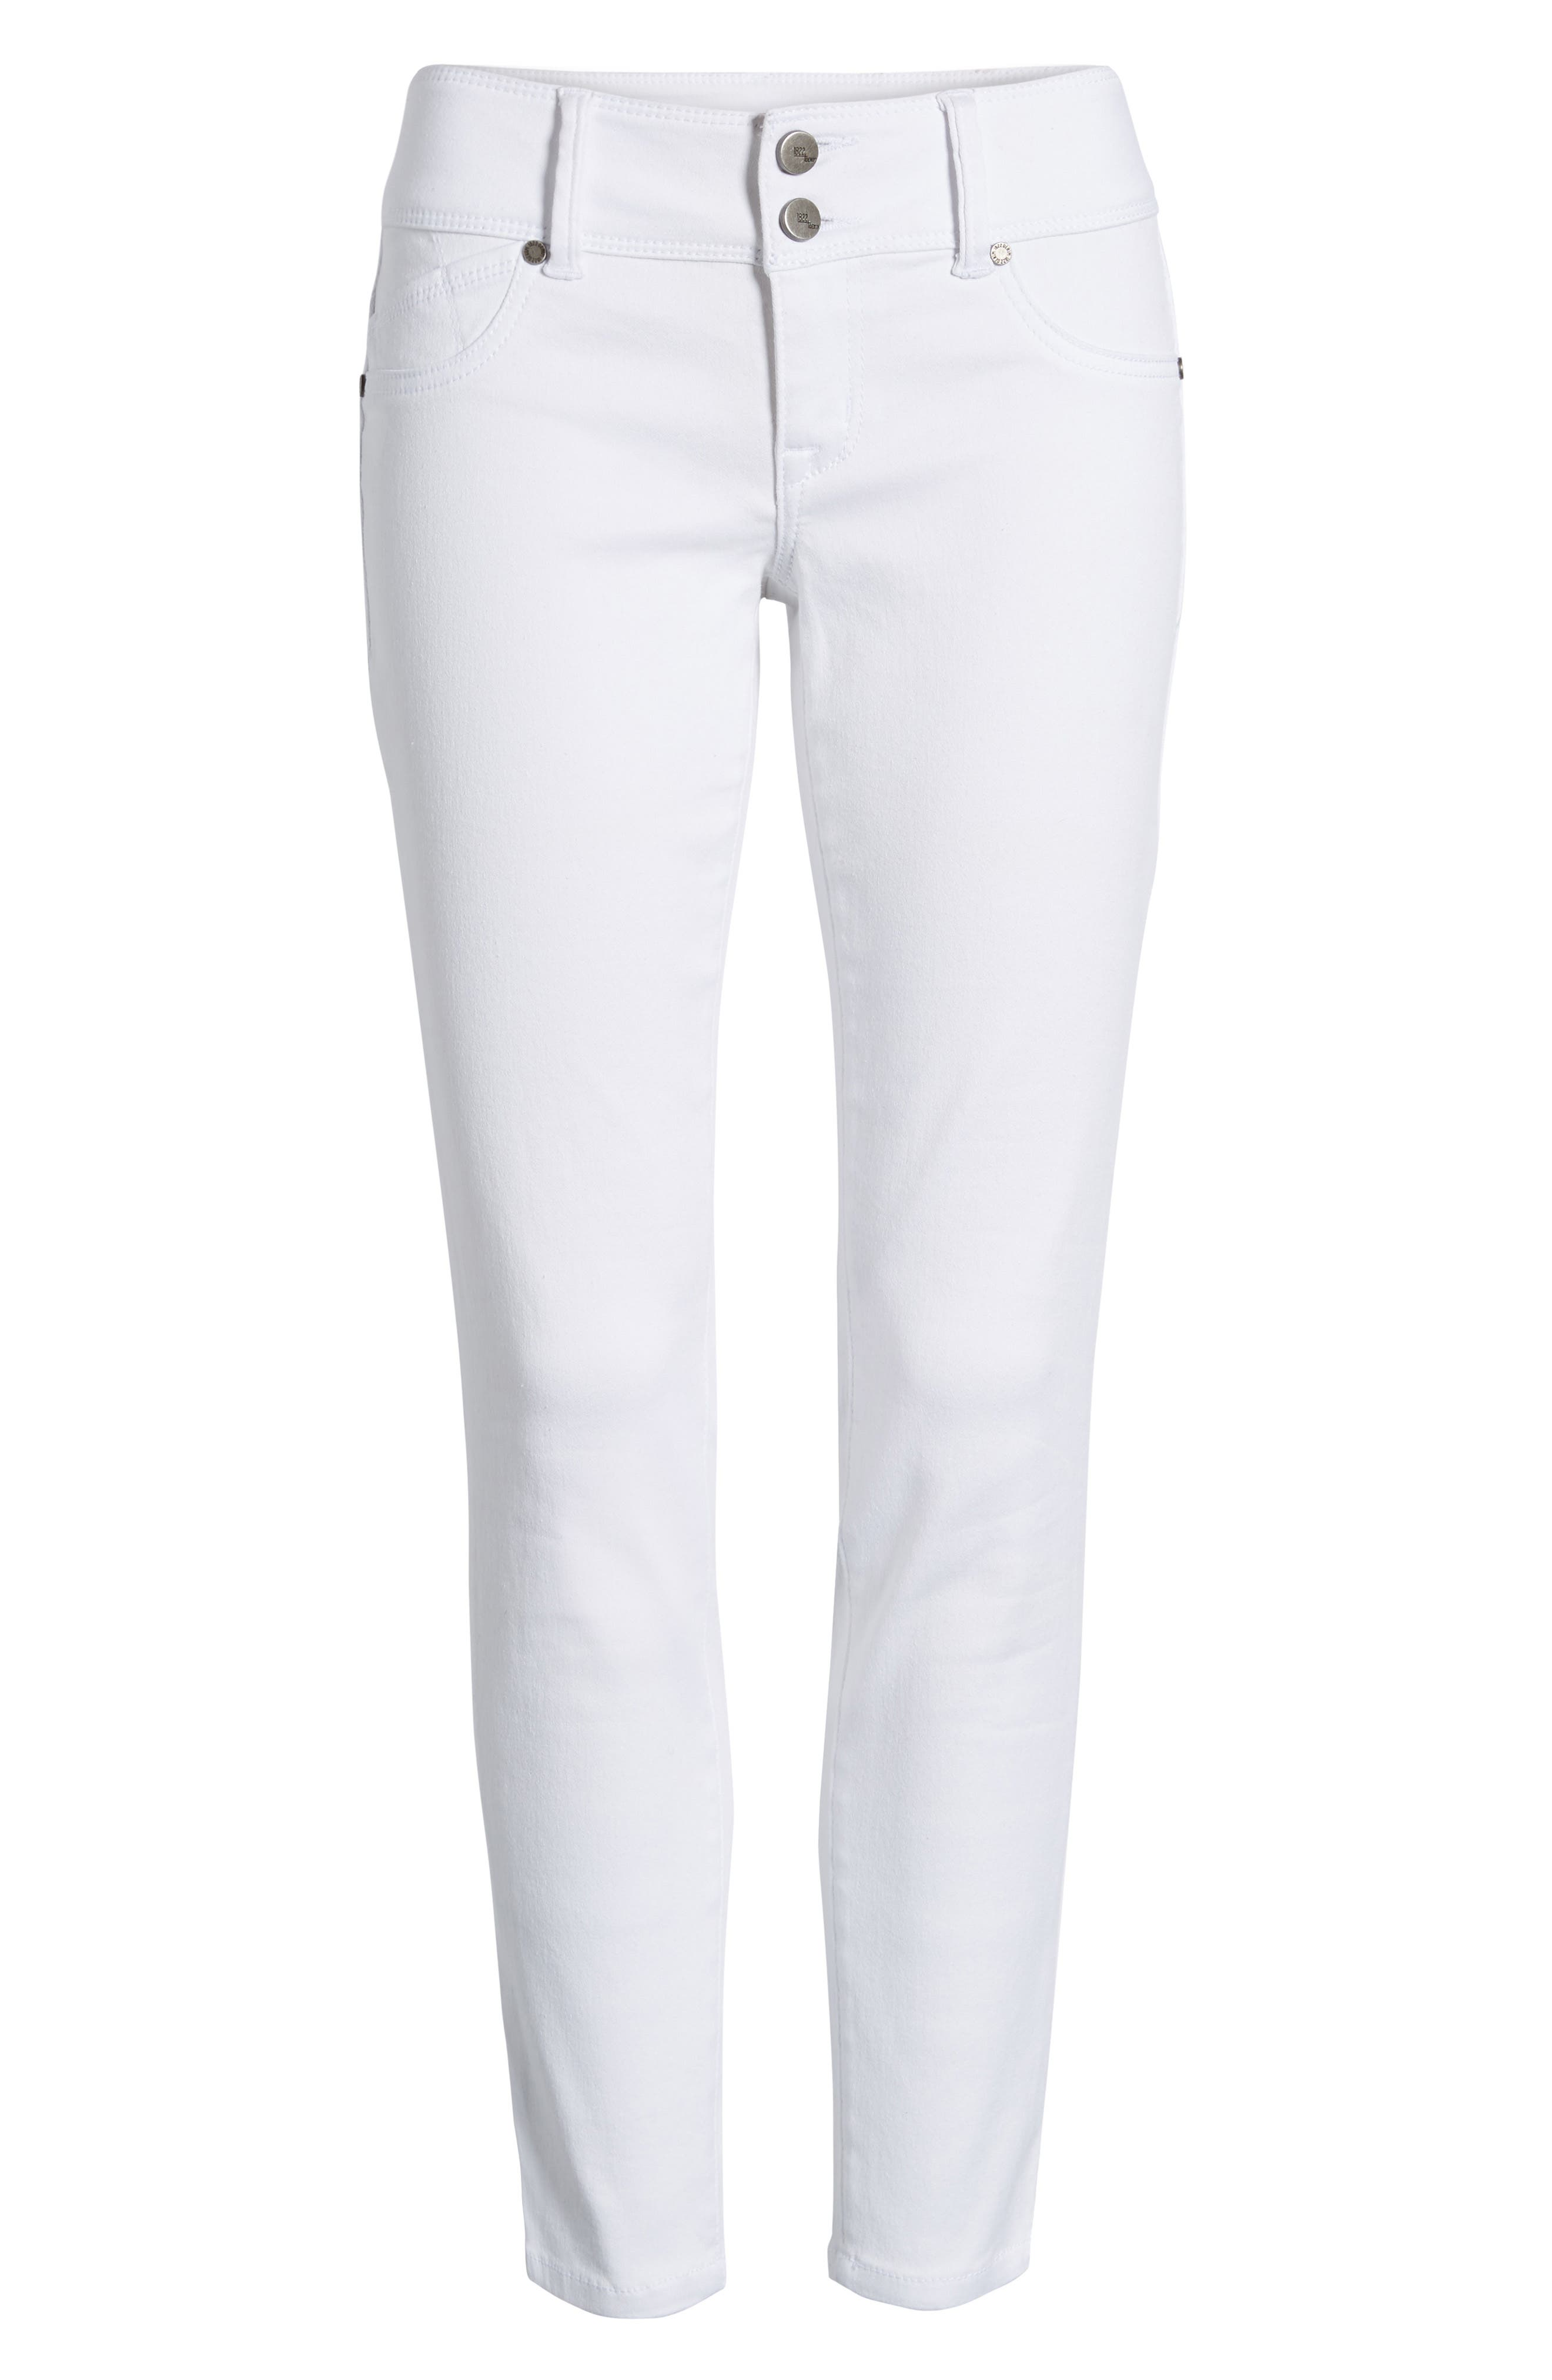 Double Button Skinny Jeans,                             Alternate thumbnail 6, color,                             100